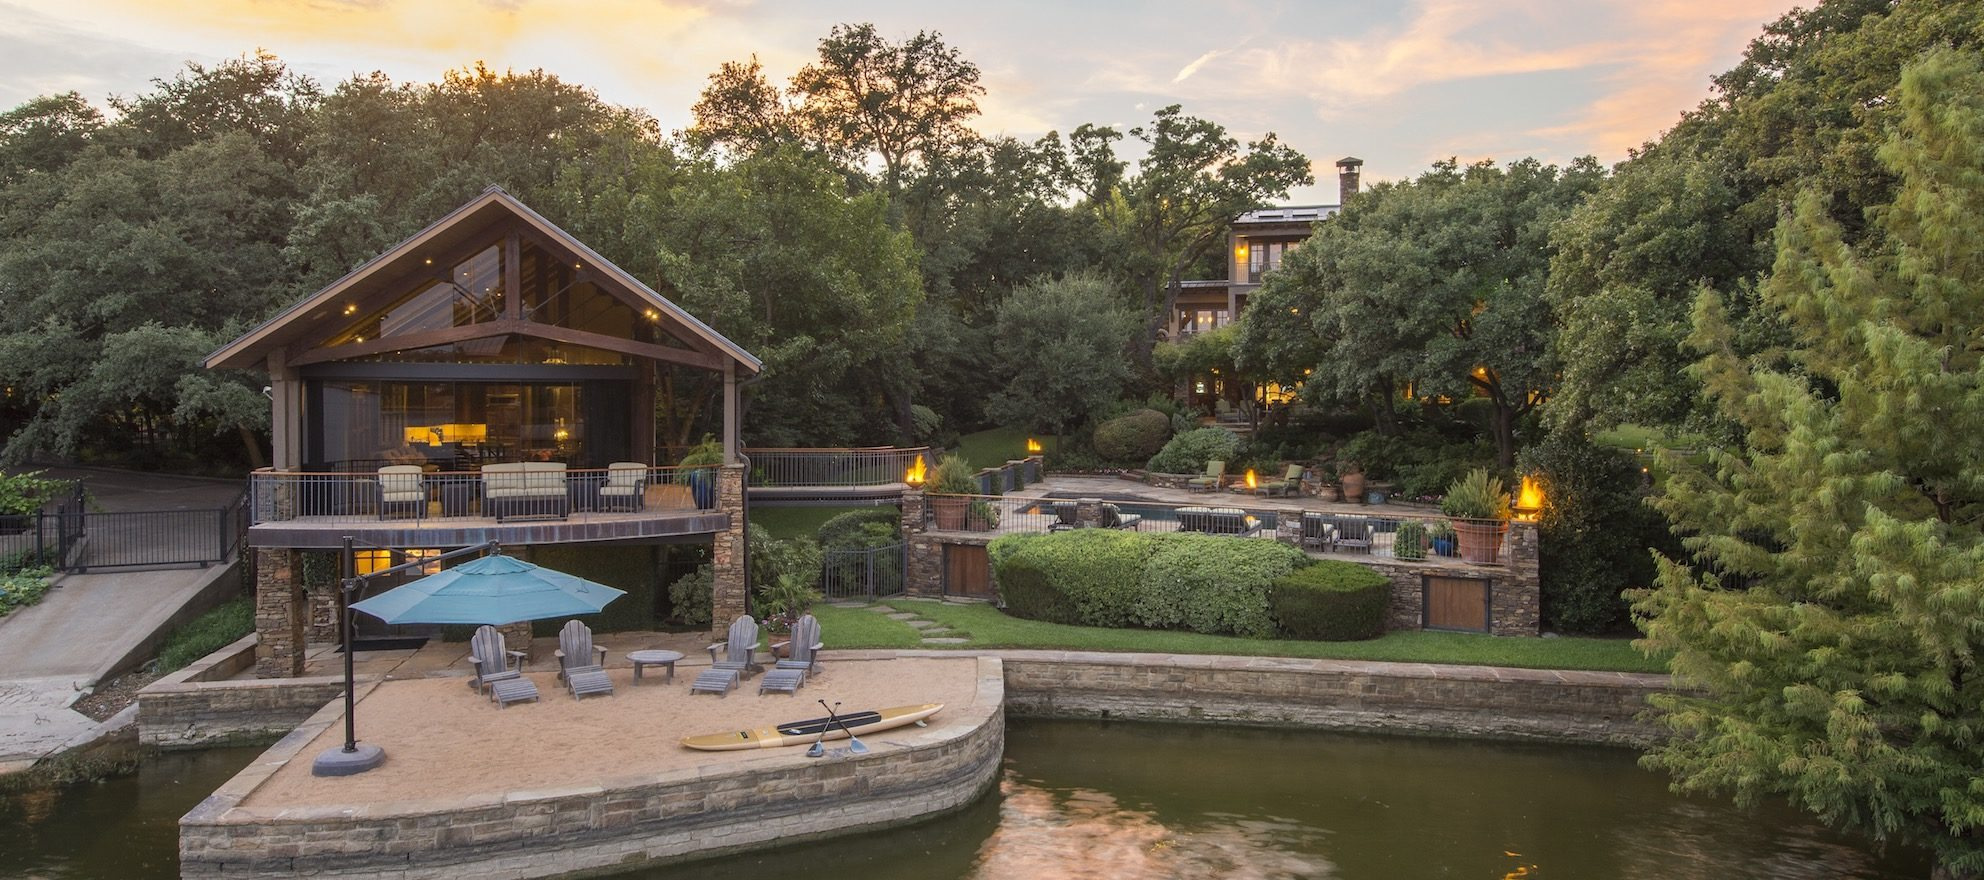 Luxury listing of the day: Mariposa del Lago in Fort Worth, Texas